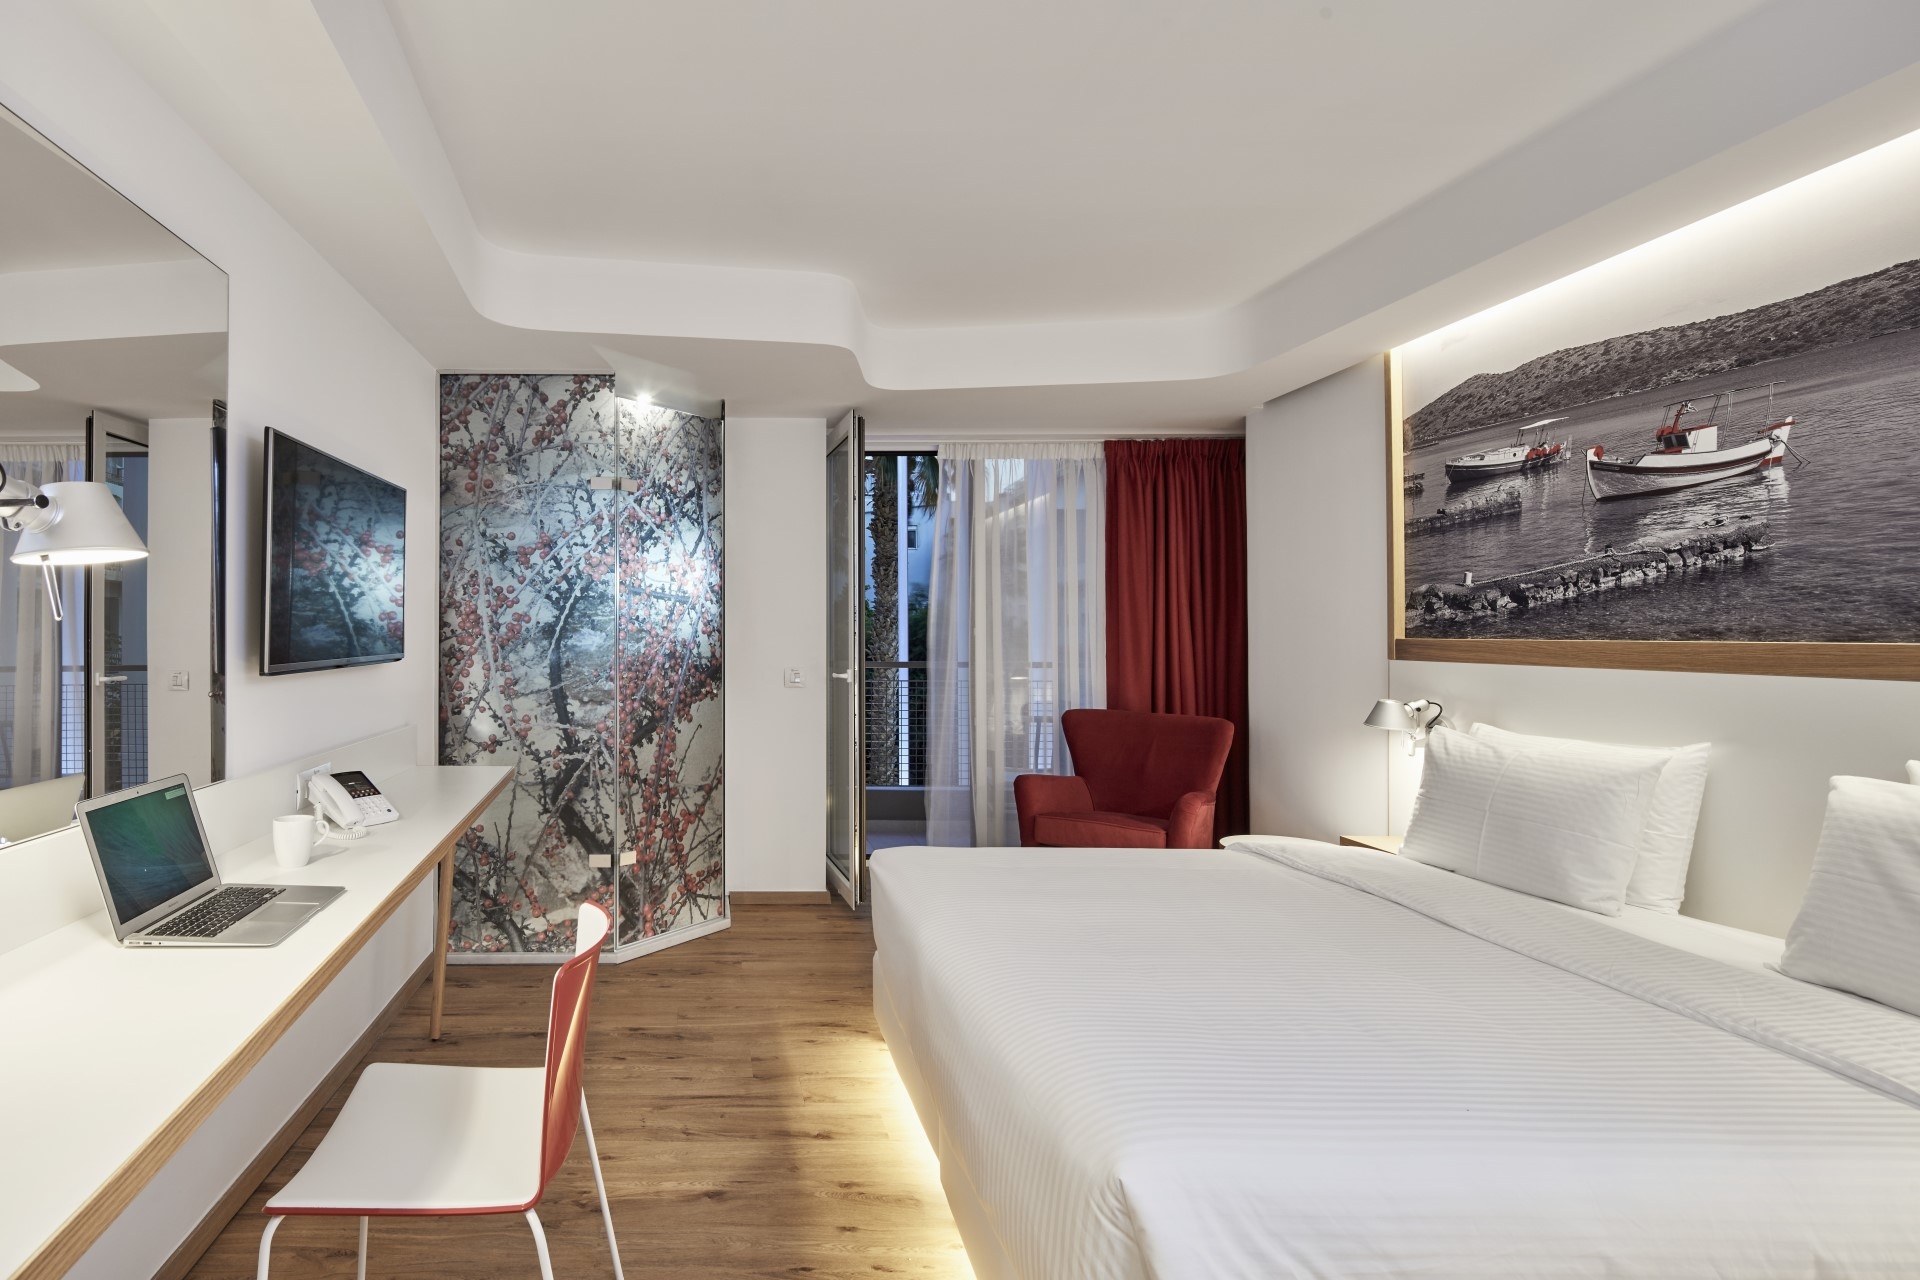 100 Eco Friendly And Sustainable Olive Green Hotel Is A Premiere In Greece